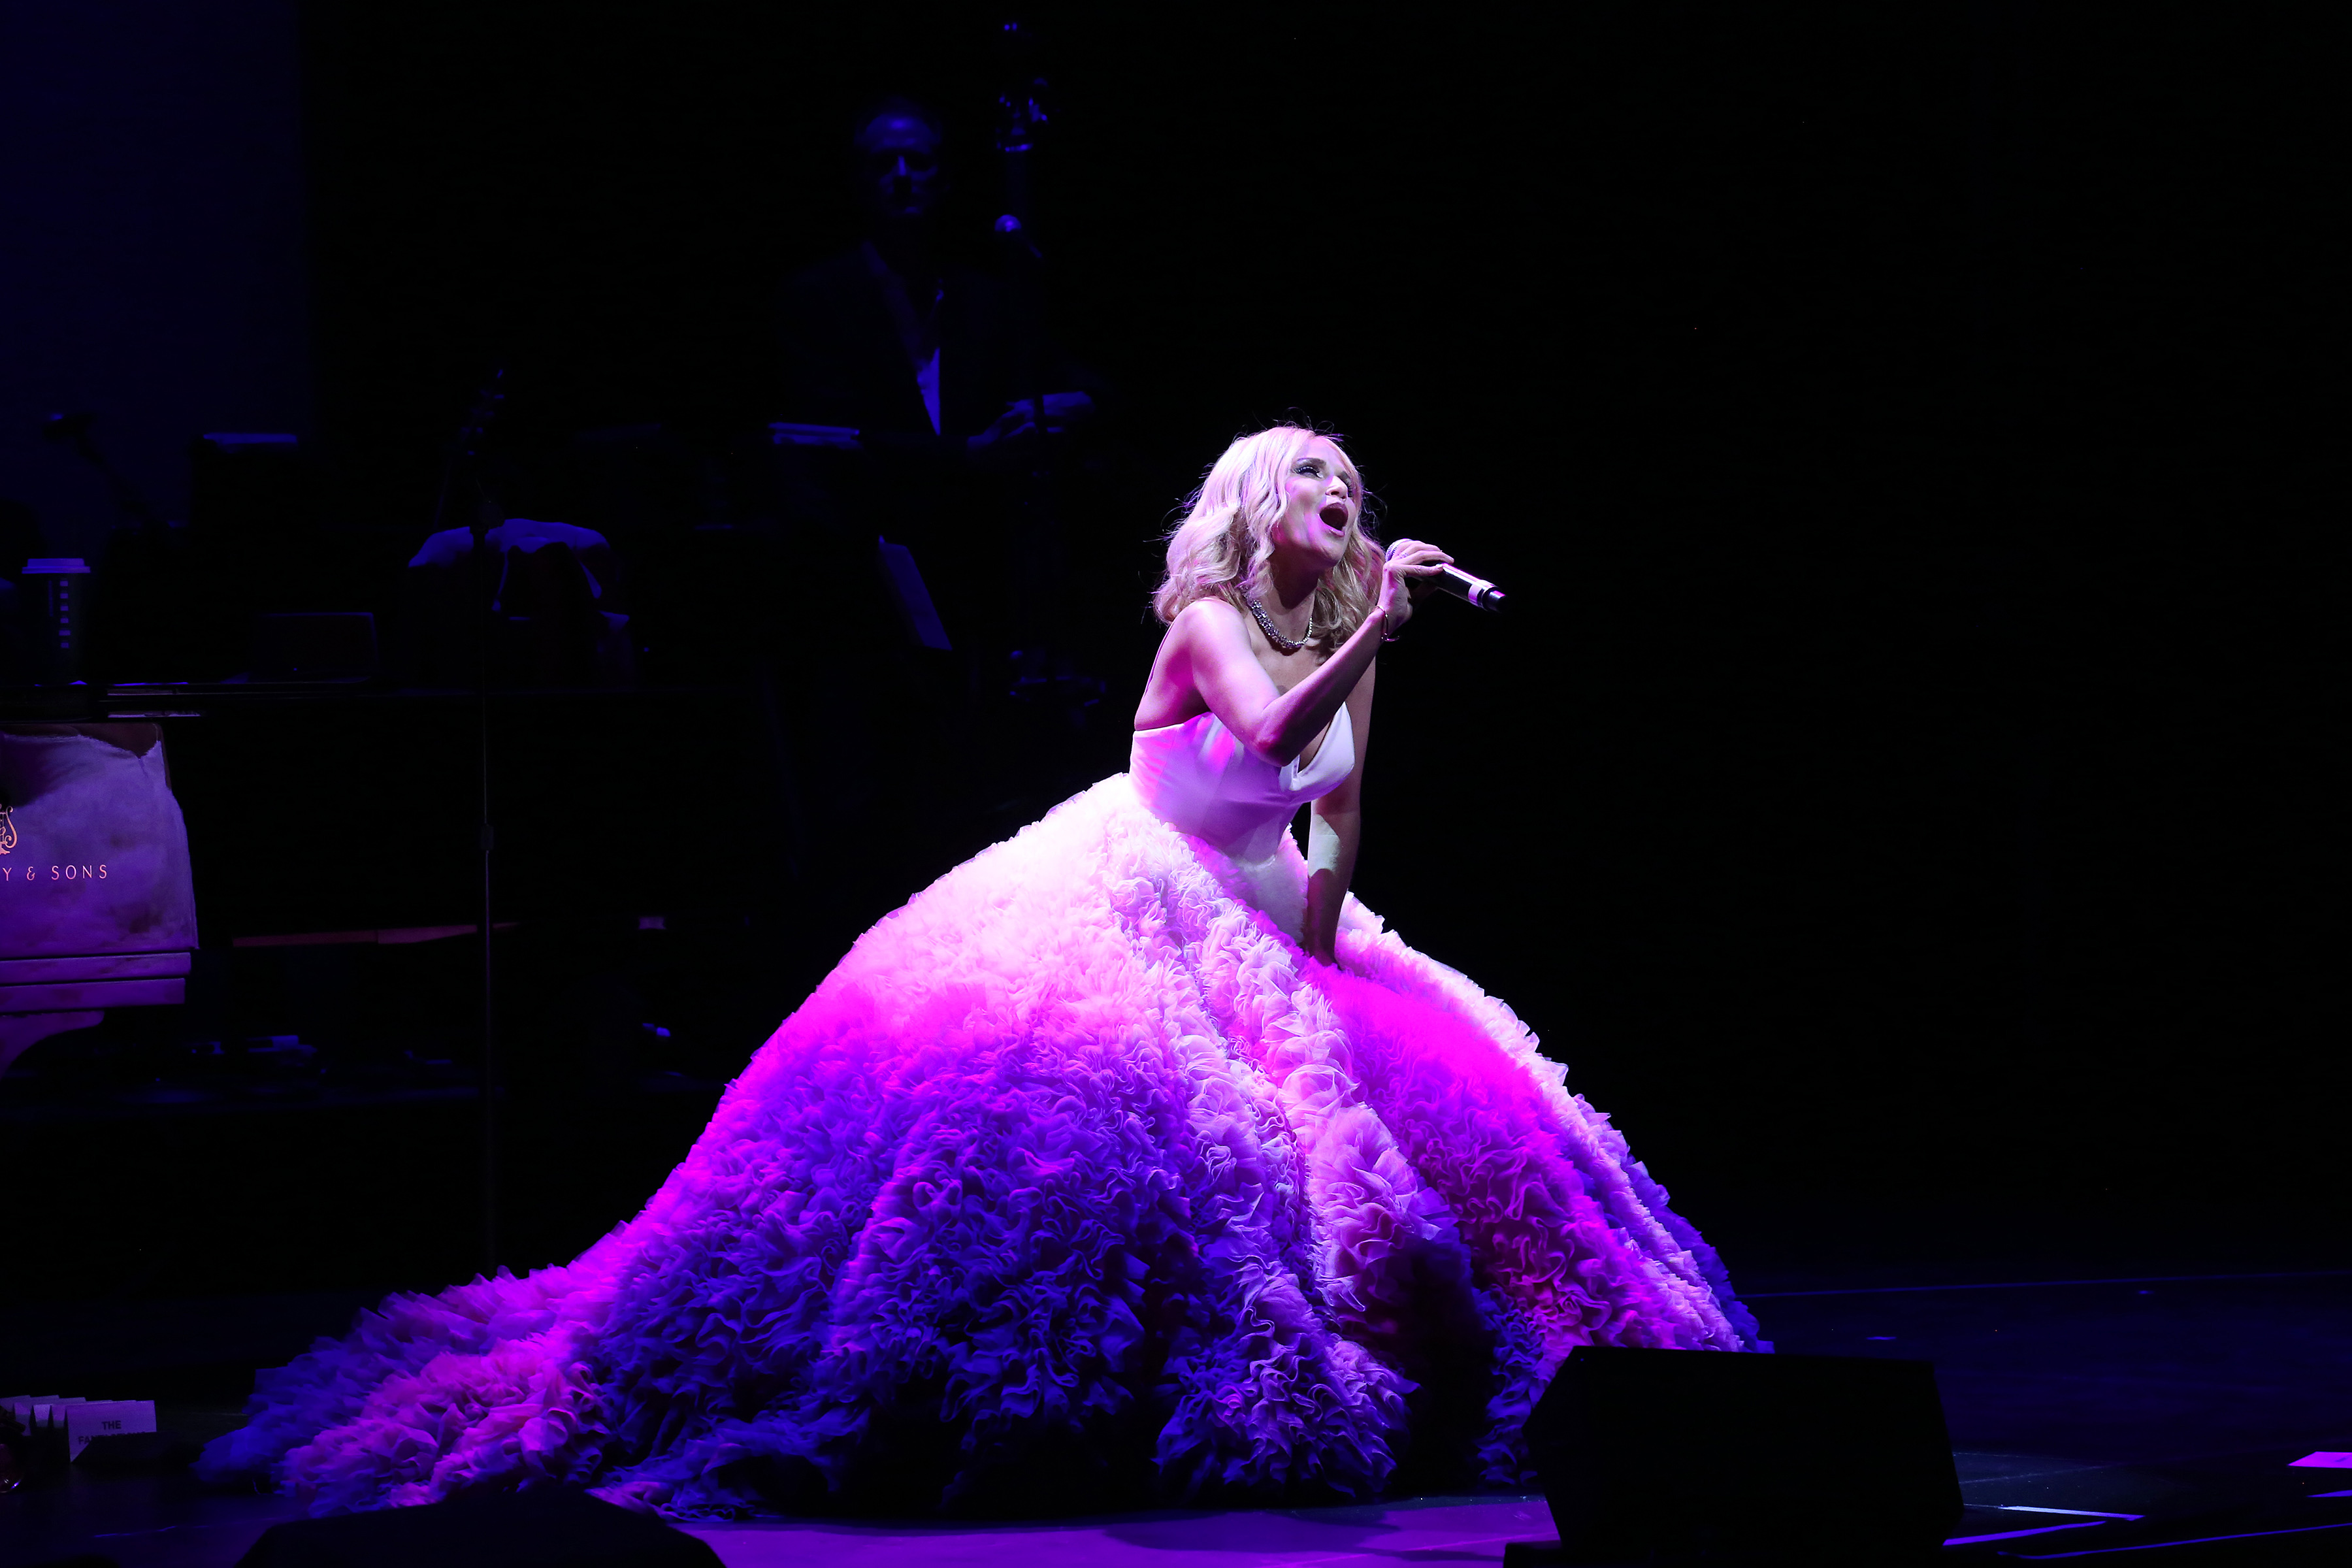 Kristin Chenoweth performing during the Opening Night of Kristin Chenoweth—My Love Letter To Broadway at the Lunt-Fontanne Theatre on November 2, 2016 in New York City.